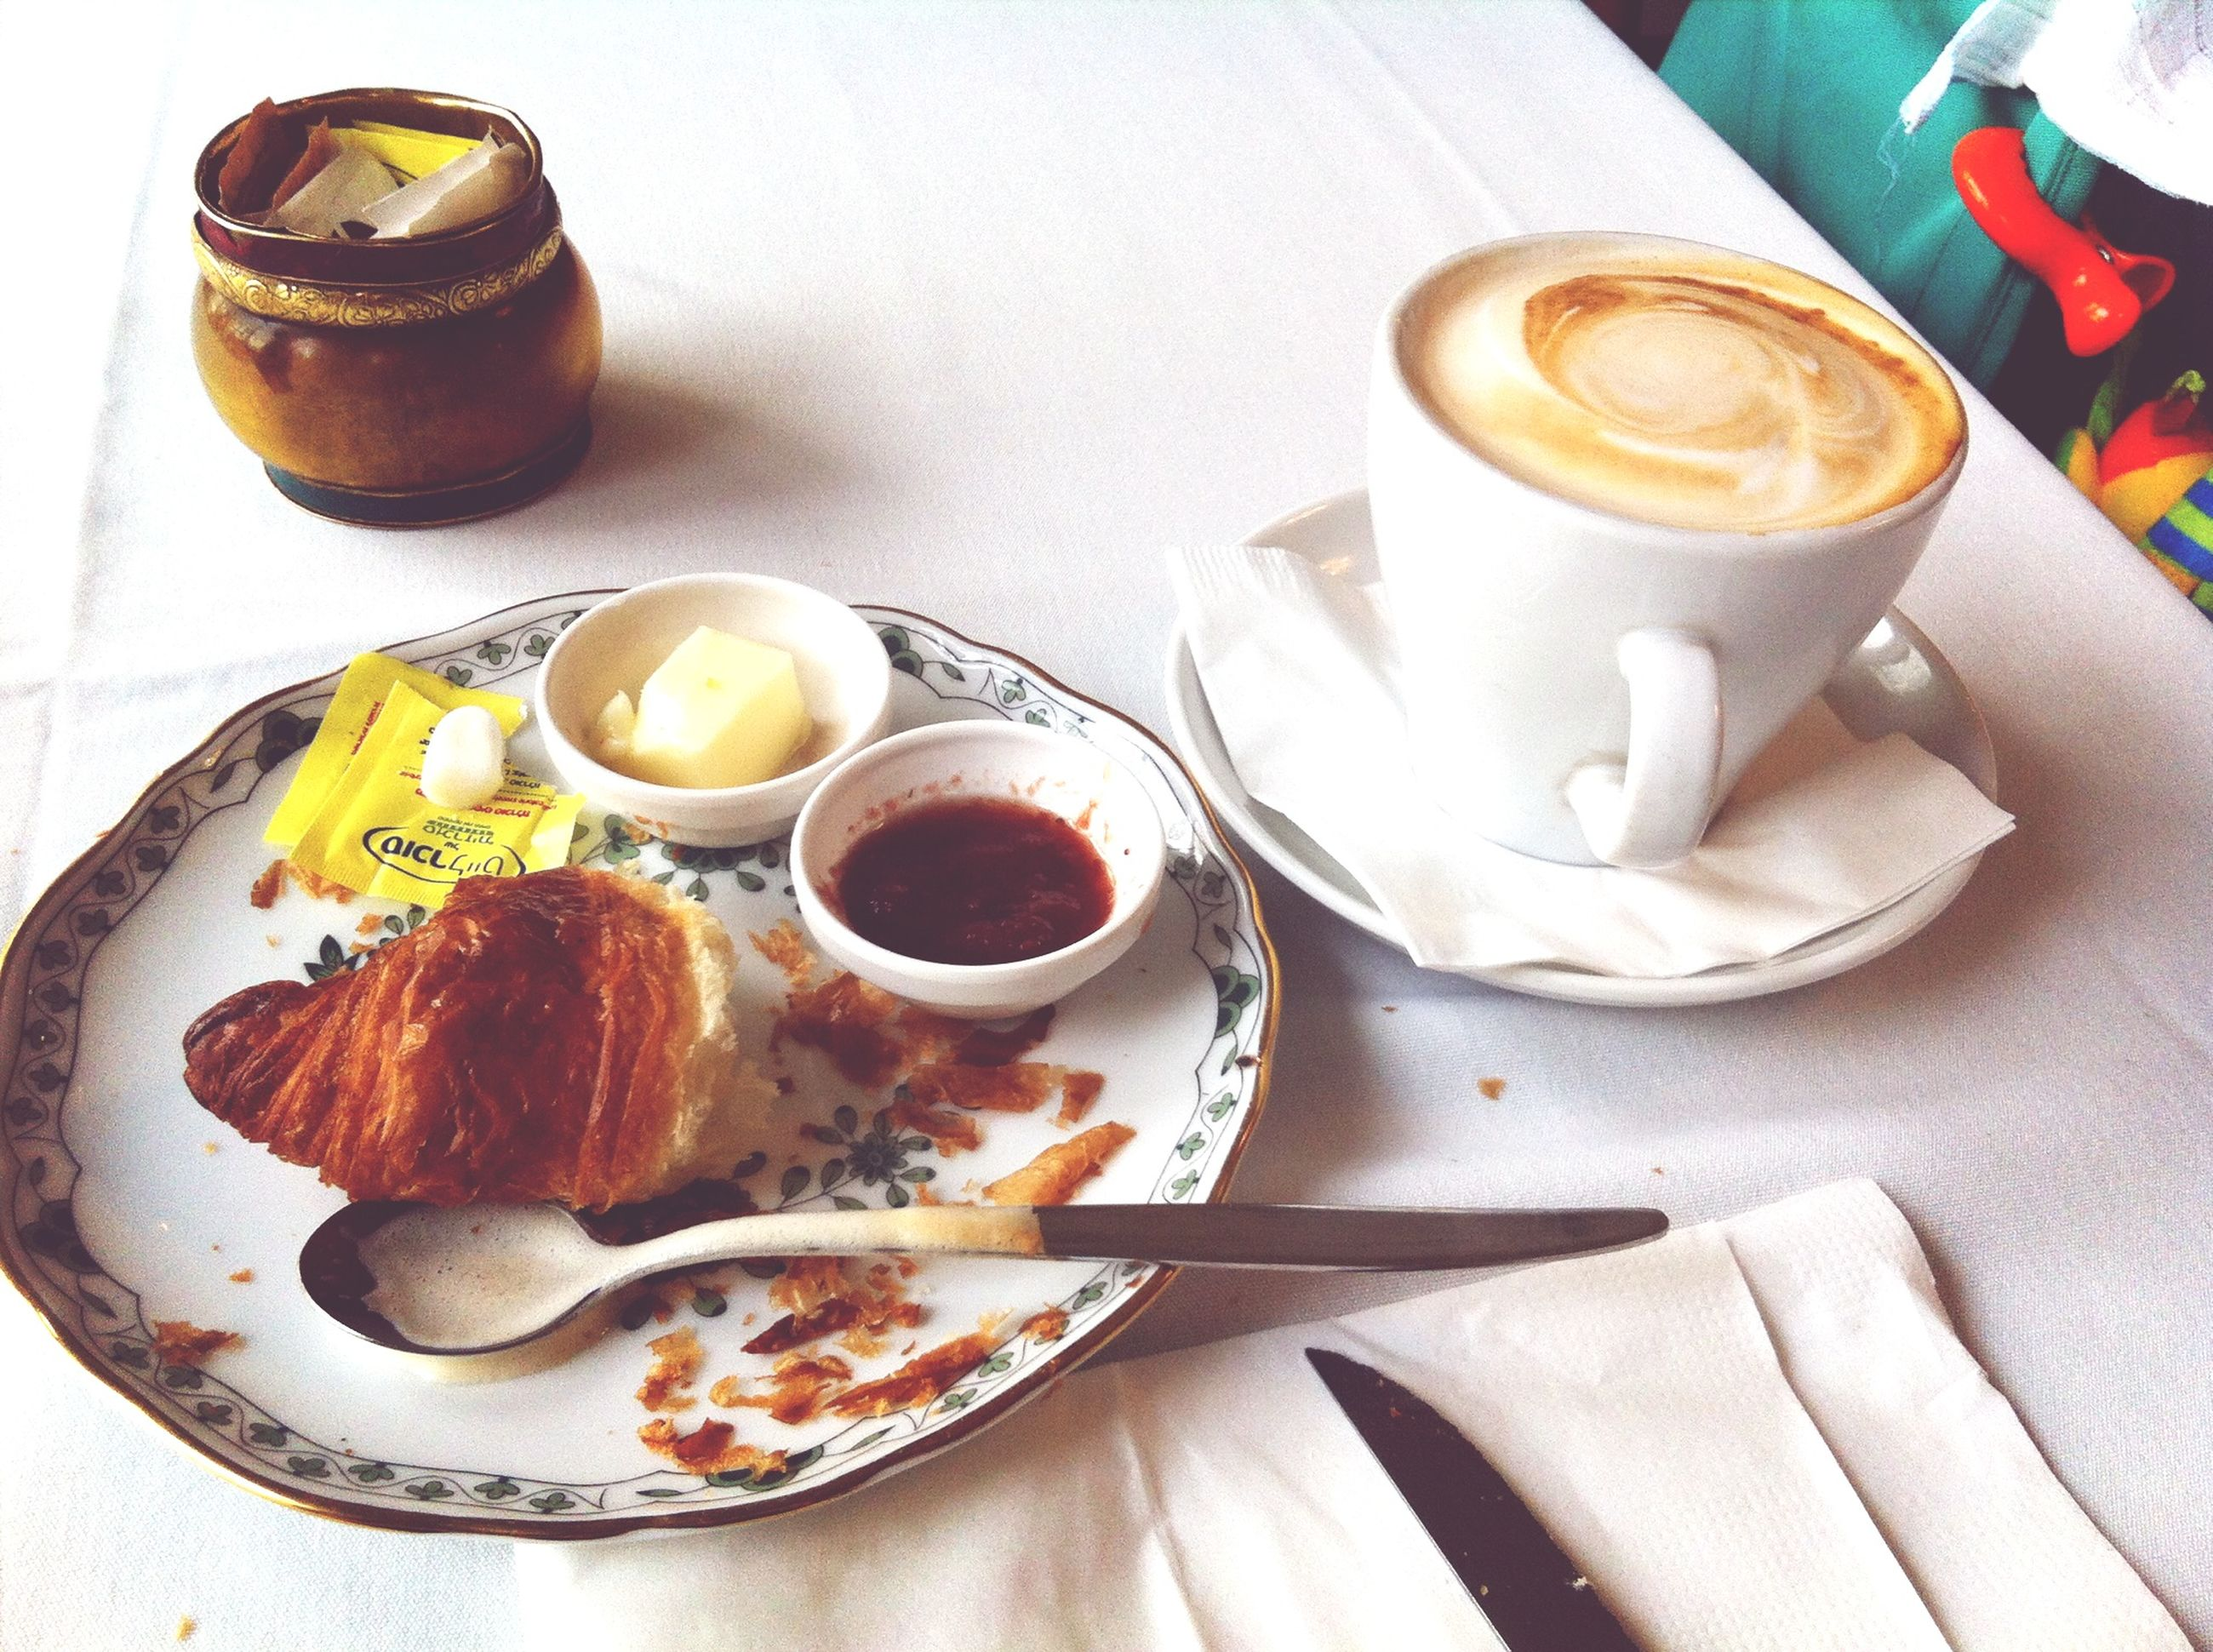 food and drink, freshness, food, drink, indoors, table, refreshment, plate, still life, ready-to-eat, coffee cup, coffee - drink, breakfast, healthy eating, high angle view, saucer, spoon, serving size, indulgence, bread